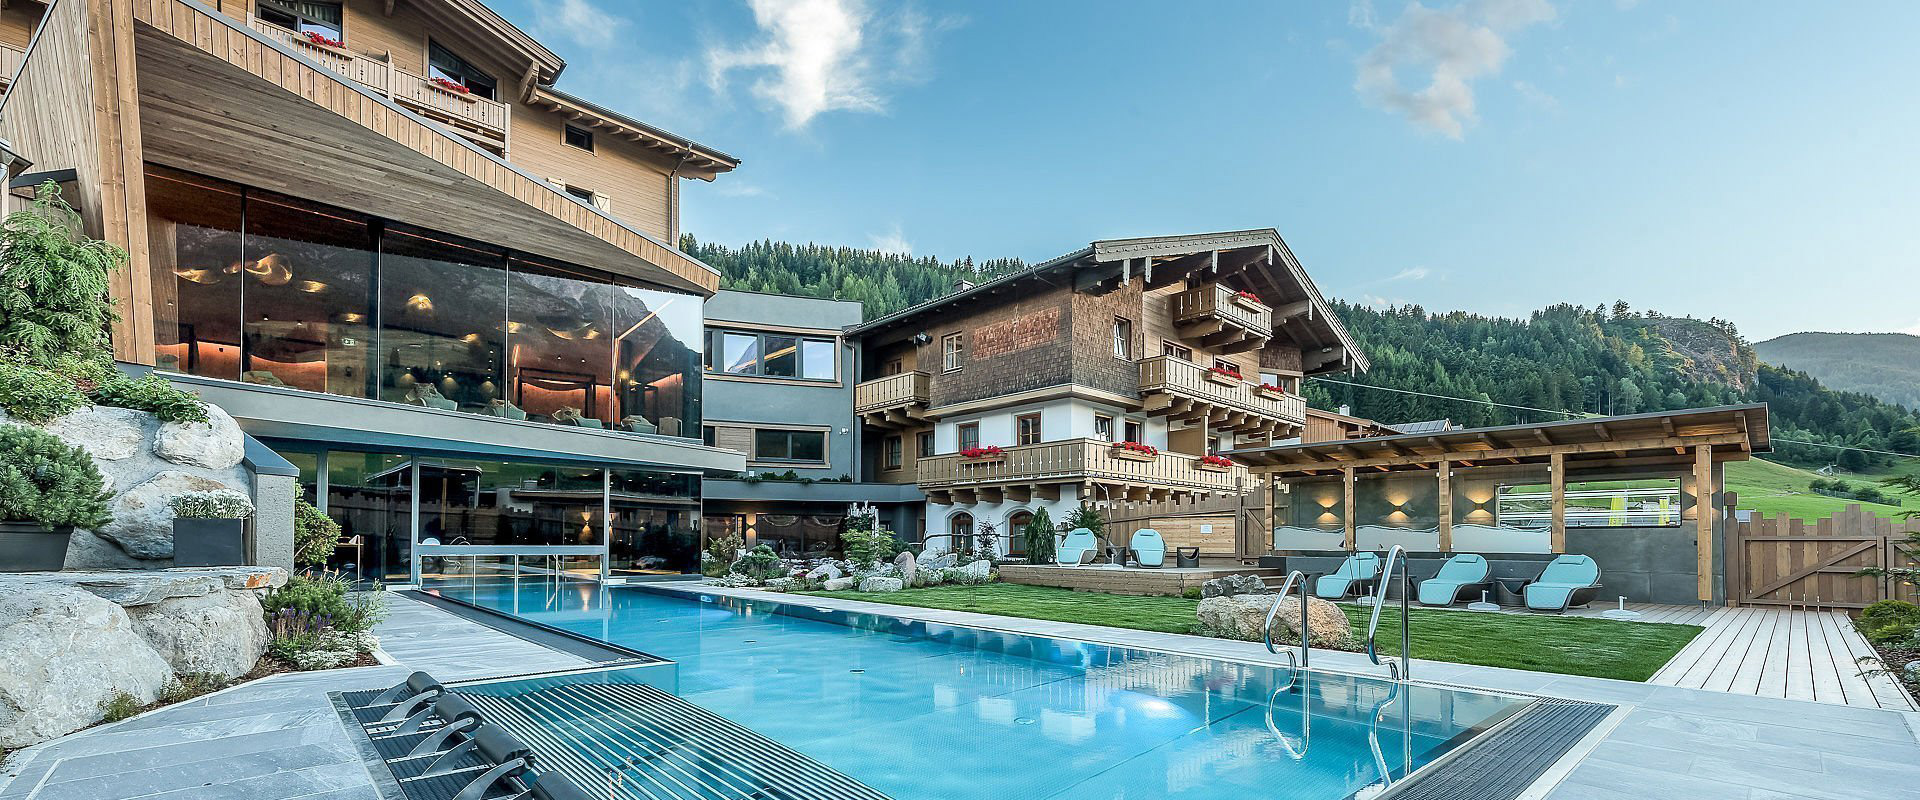 die RIEDERALM - GOOD LIFE RESORT LEOGANG